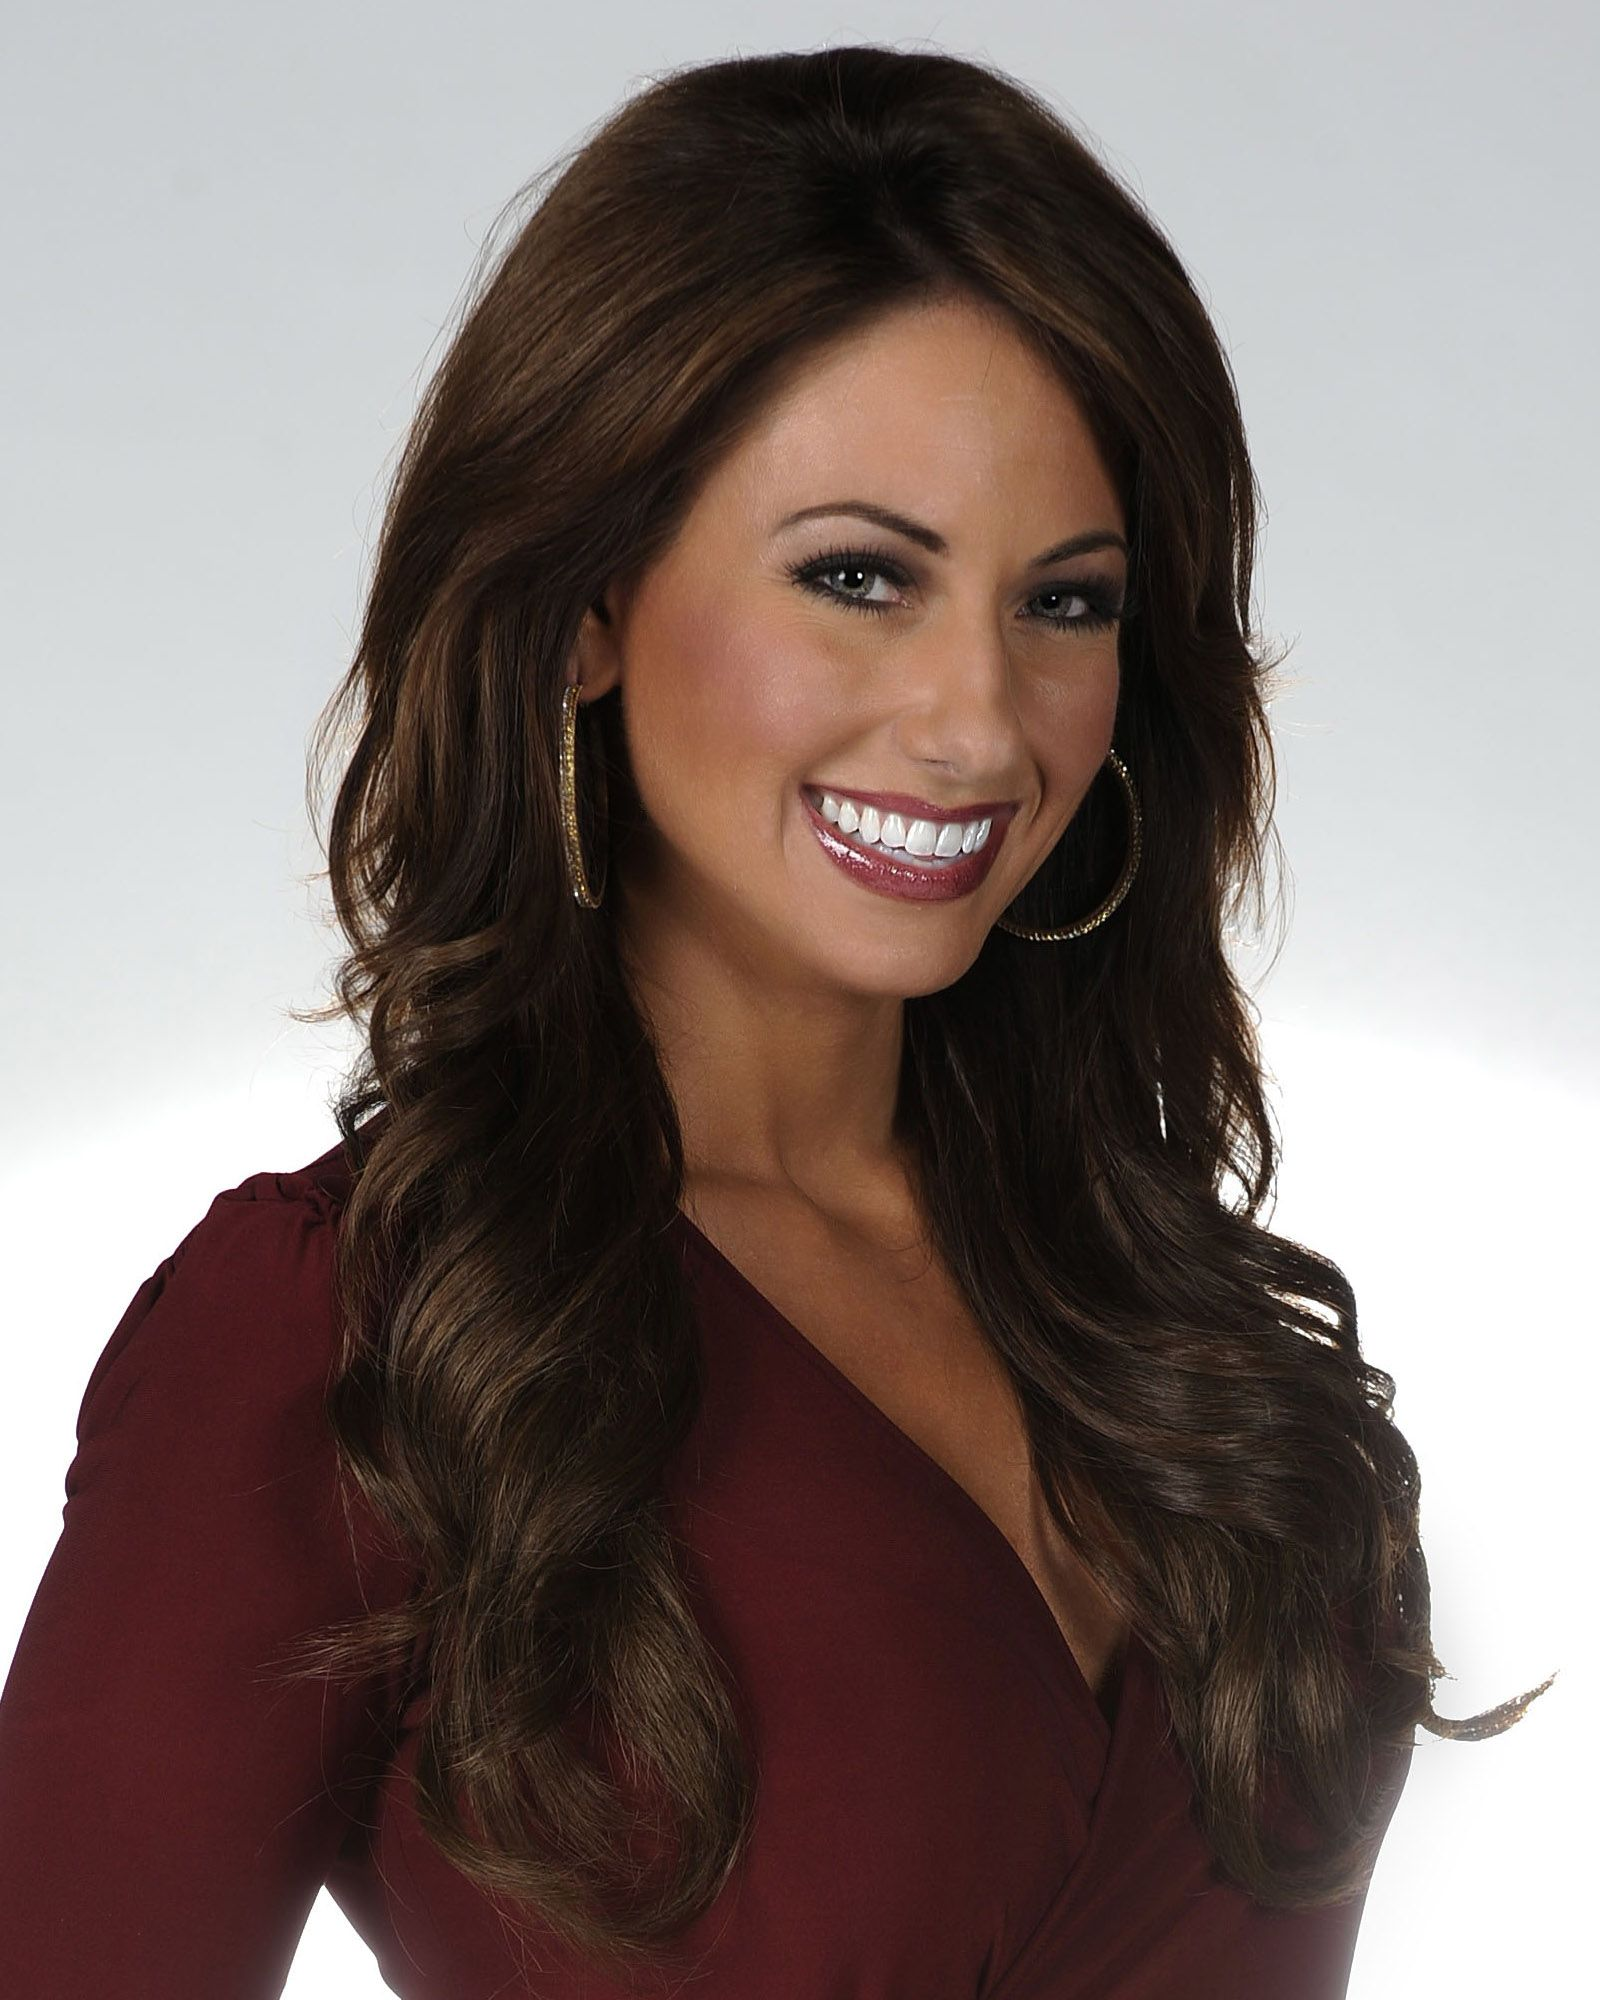 Opinion holly sonders leaked pics nude